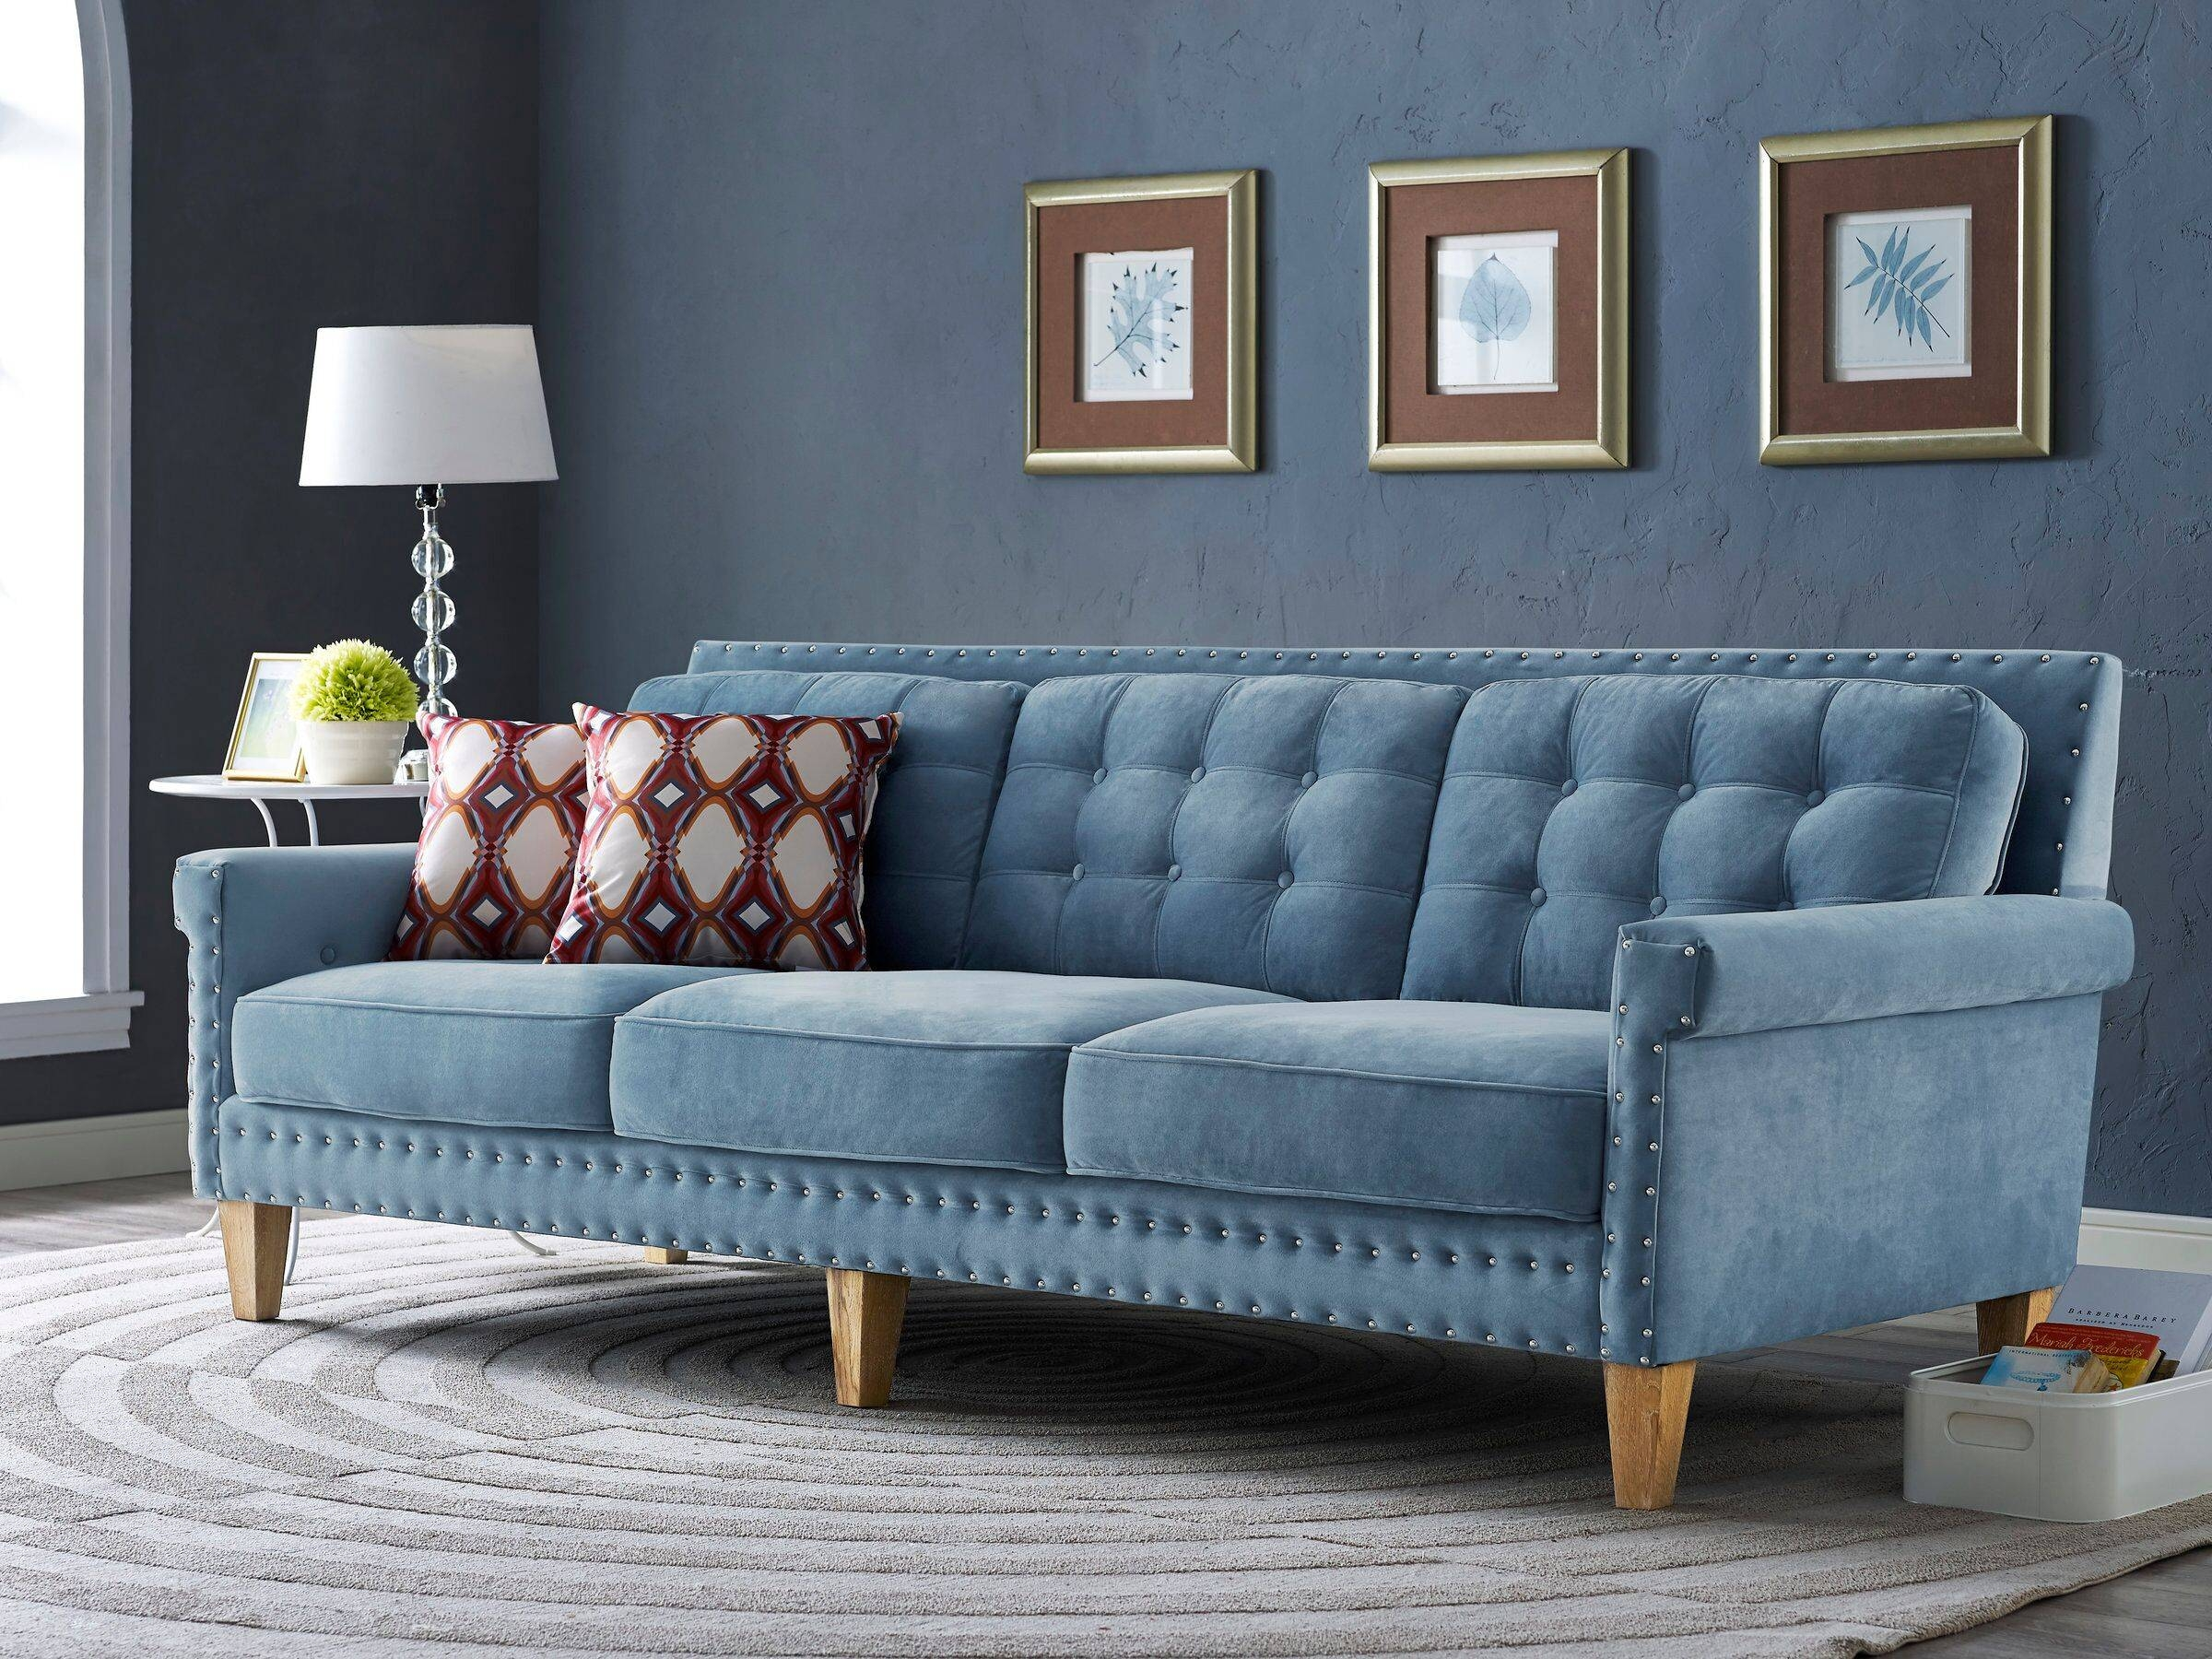 Blue Velvet Tufted Sofa Nail Head Accents with regard to Blue Velvet Tufted Sofas (Image 3 of 15)